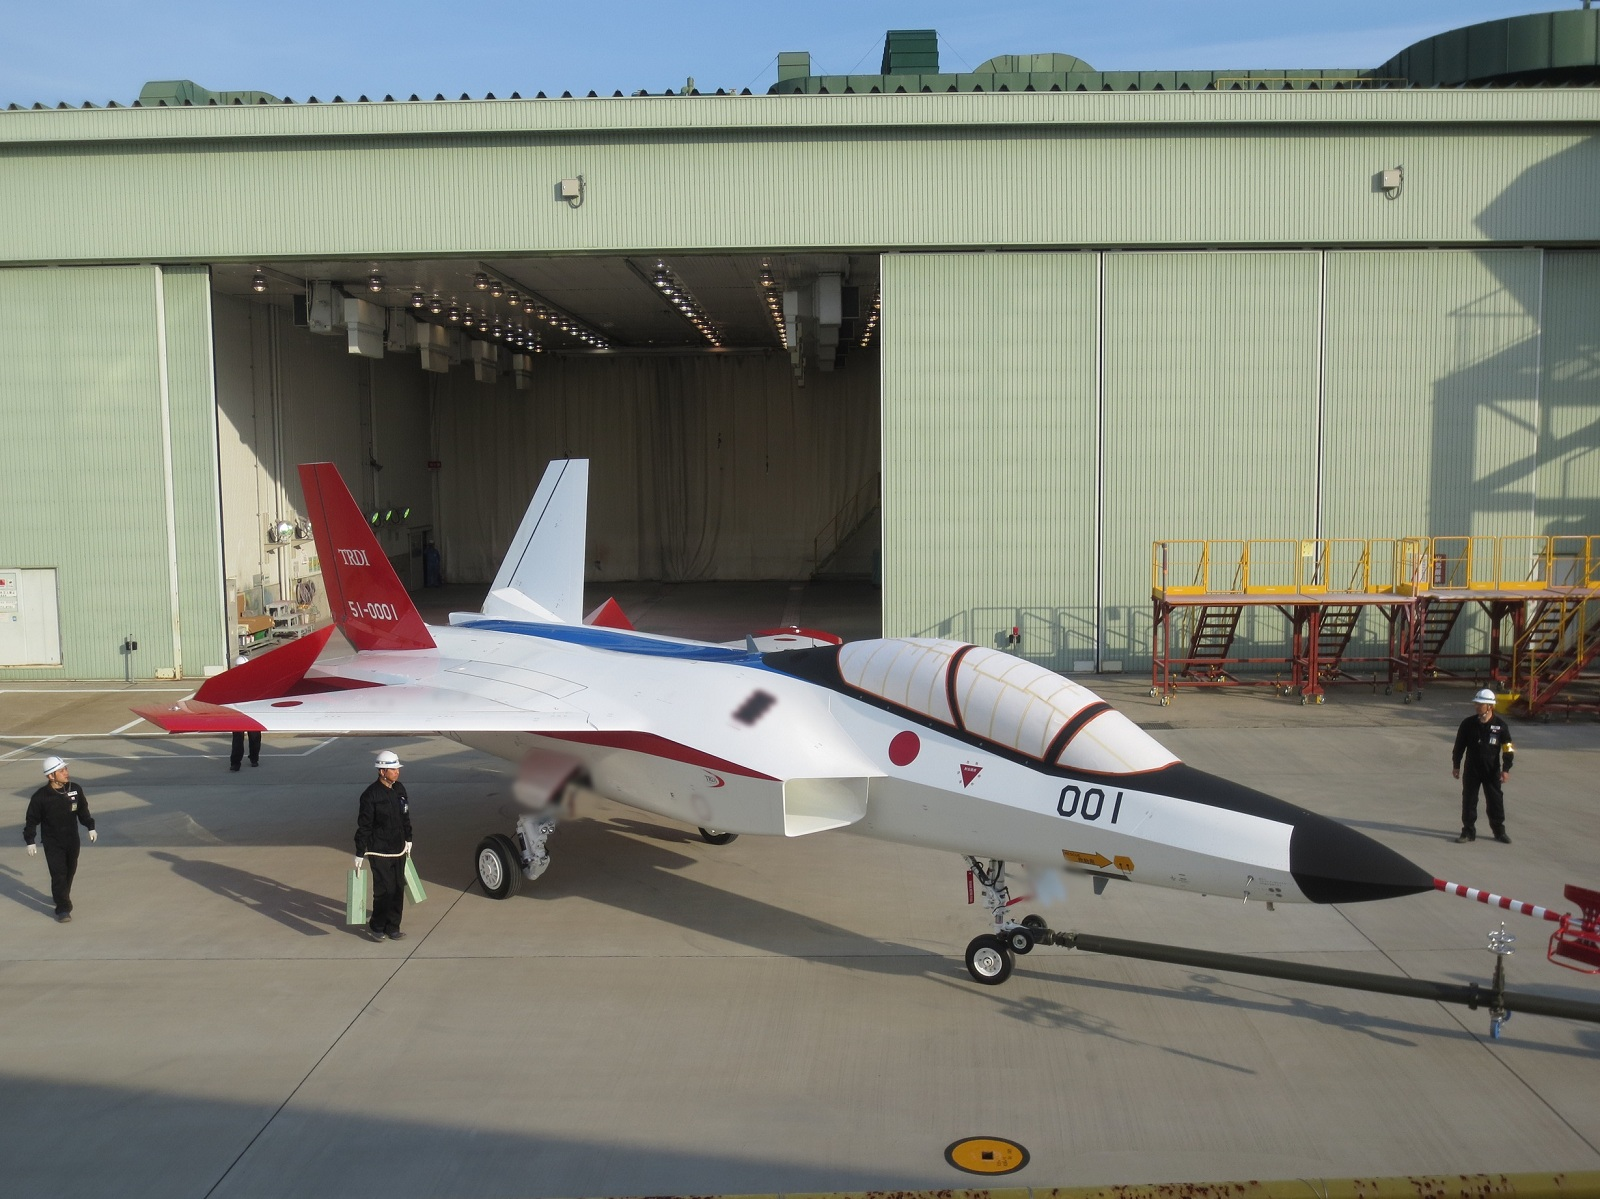 Japan made F-3 stealth fighter jet